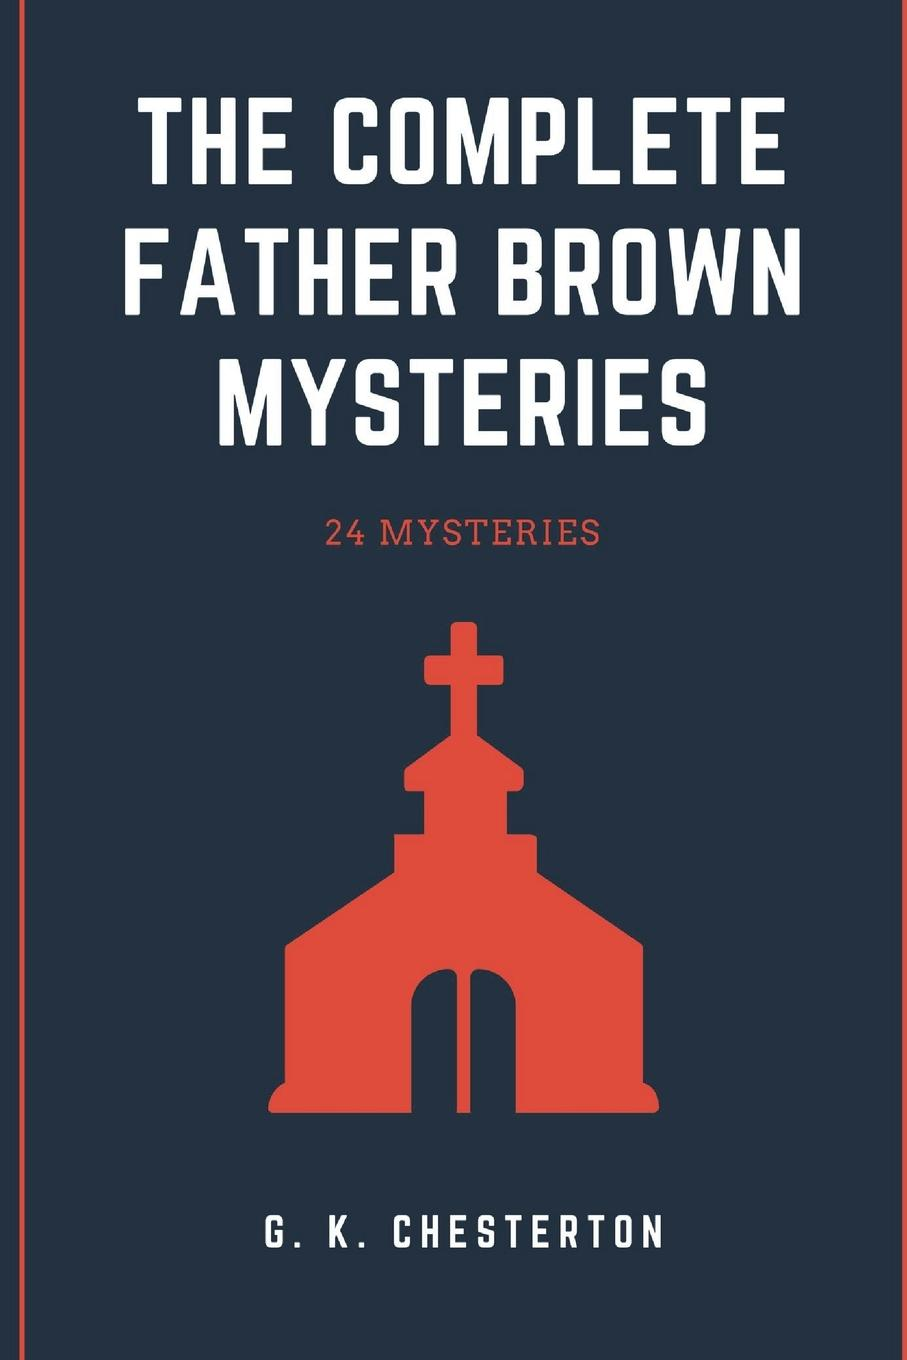 лучшая цена G. K. Chesterton The Complete Father Brown Mysteries